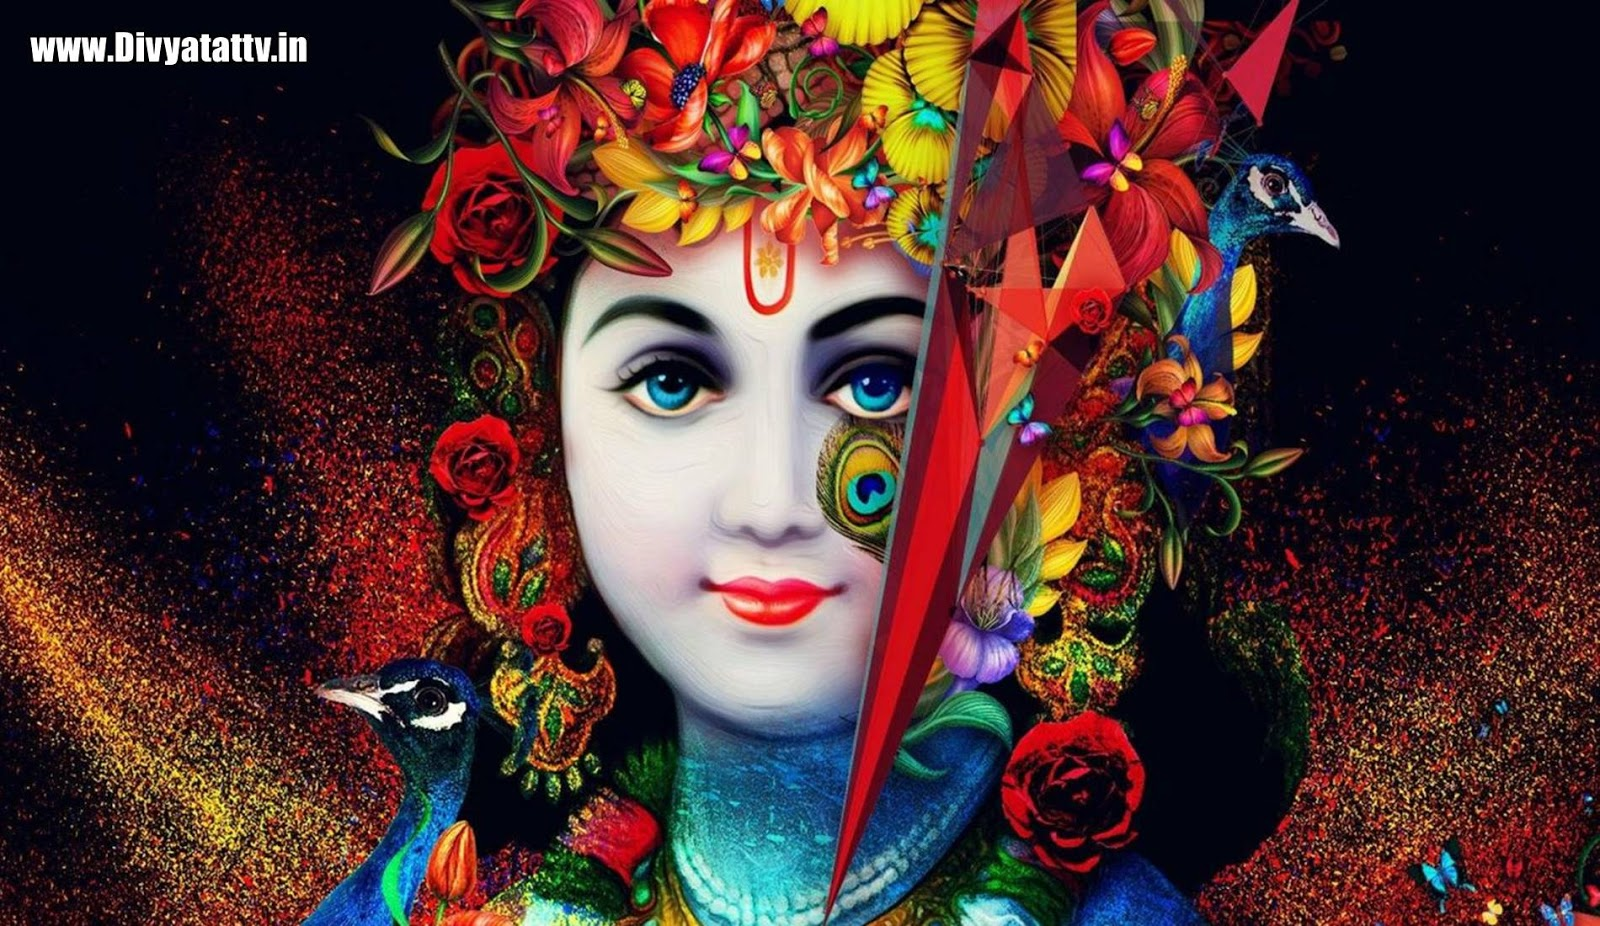 Attractive Sri Krishna Images Photos And Wallpapers Krishna Wallpaper Hd 1600x926 Download Hd Wallpaper Wallpapertip